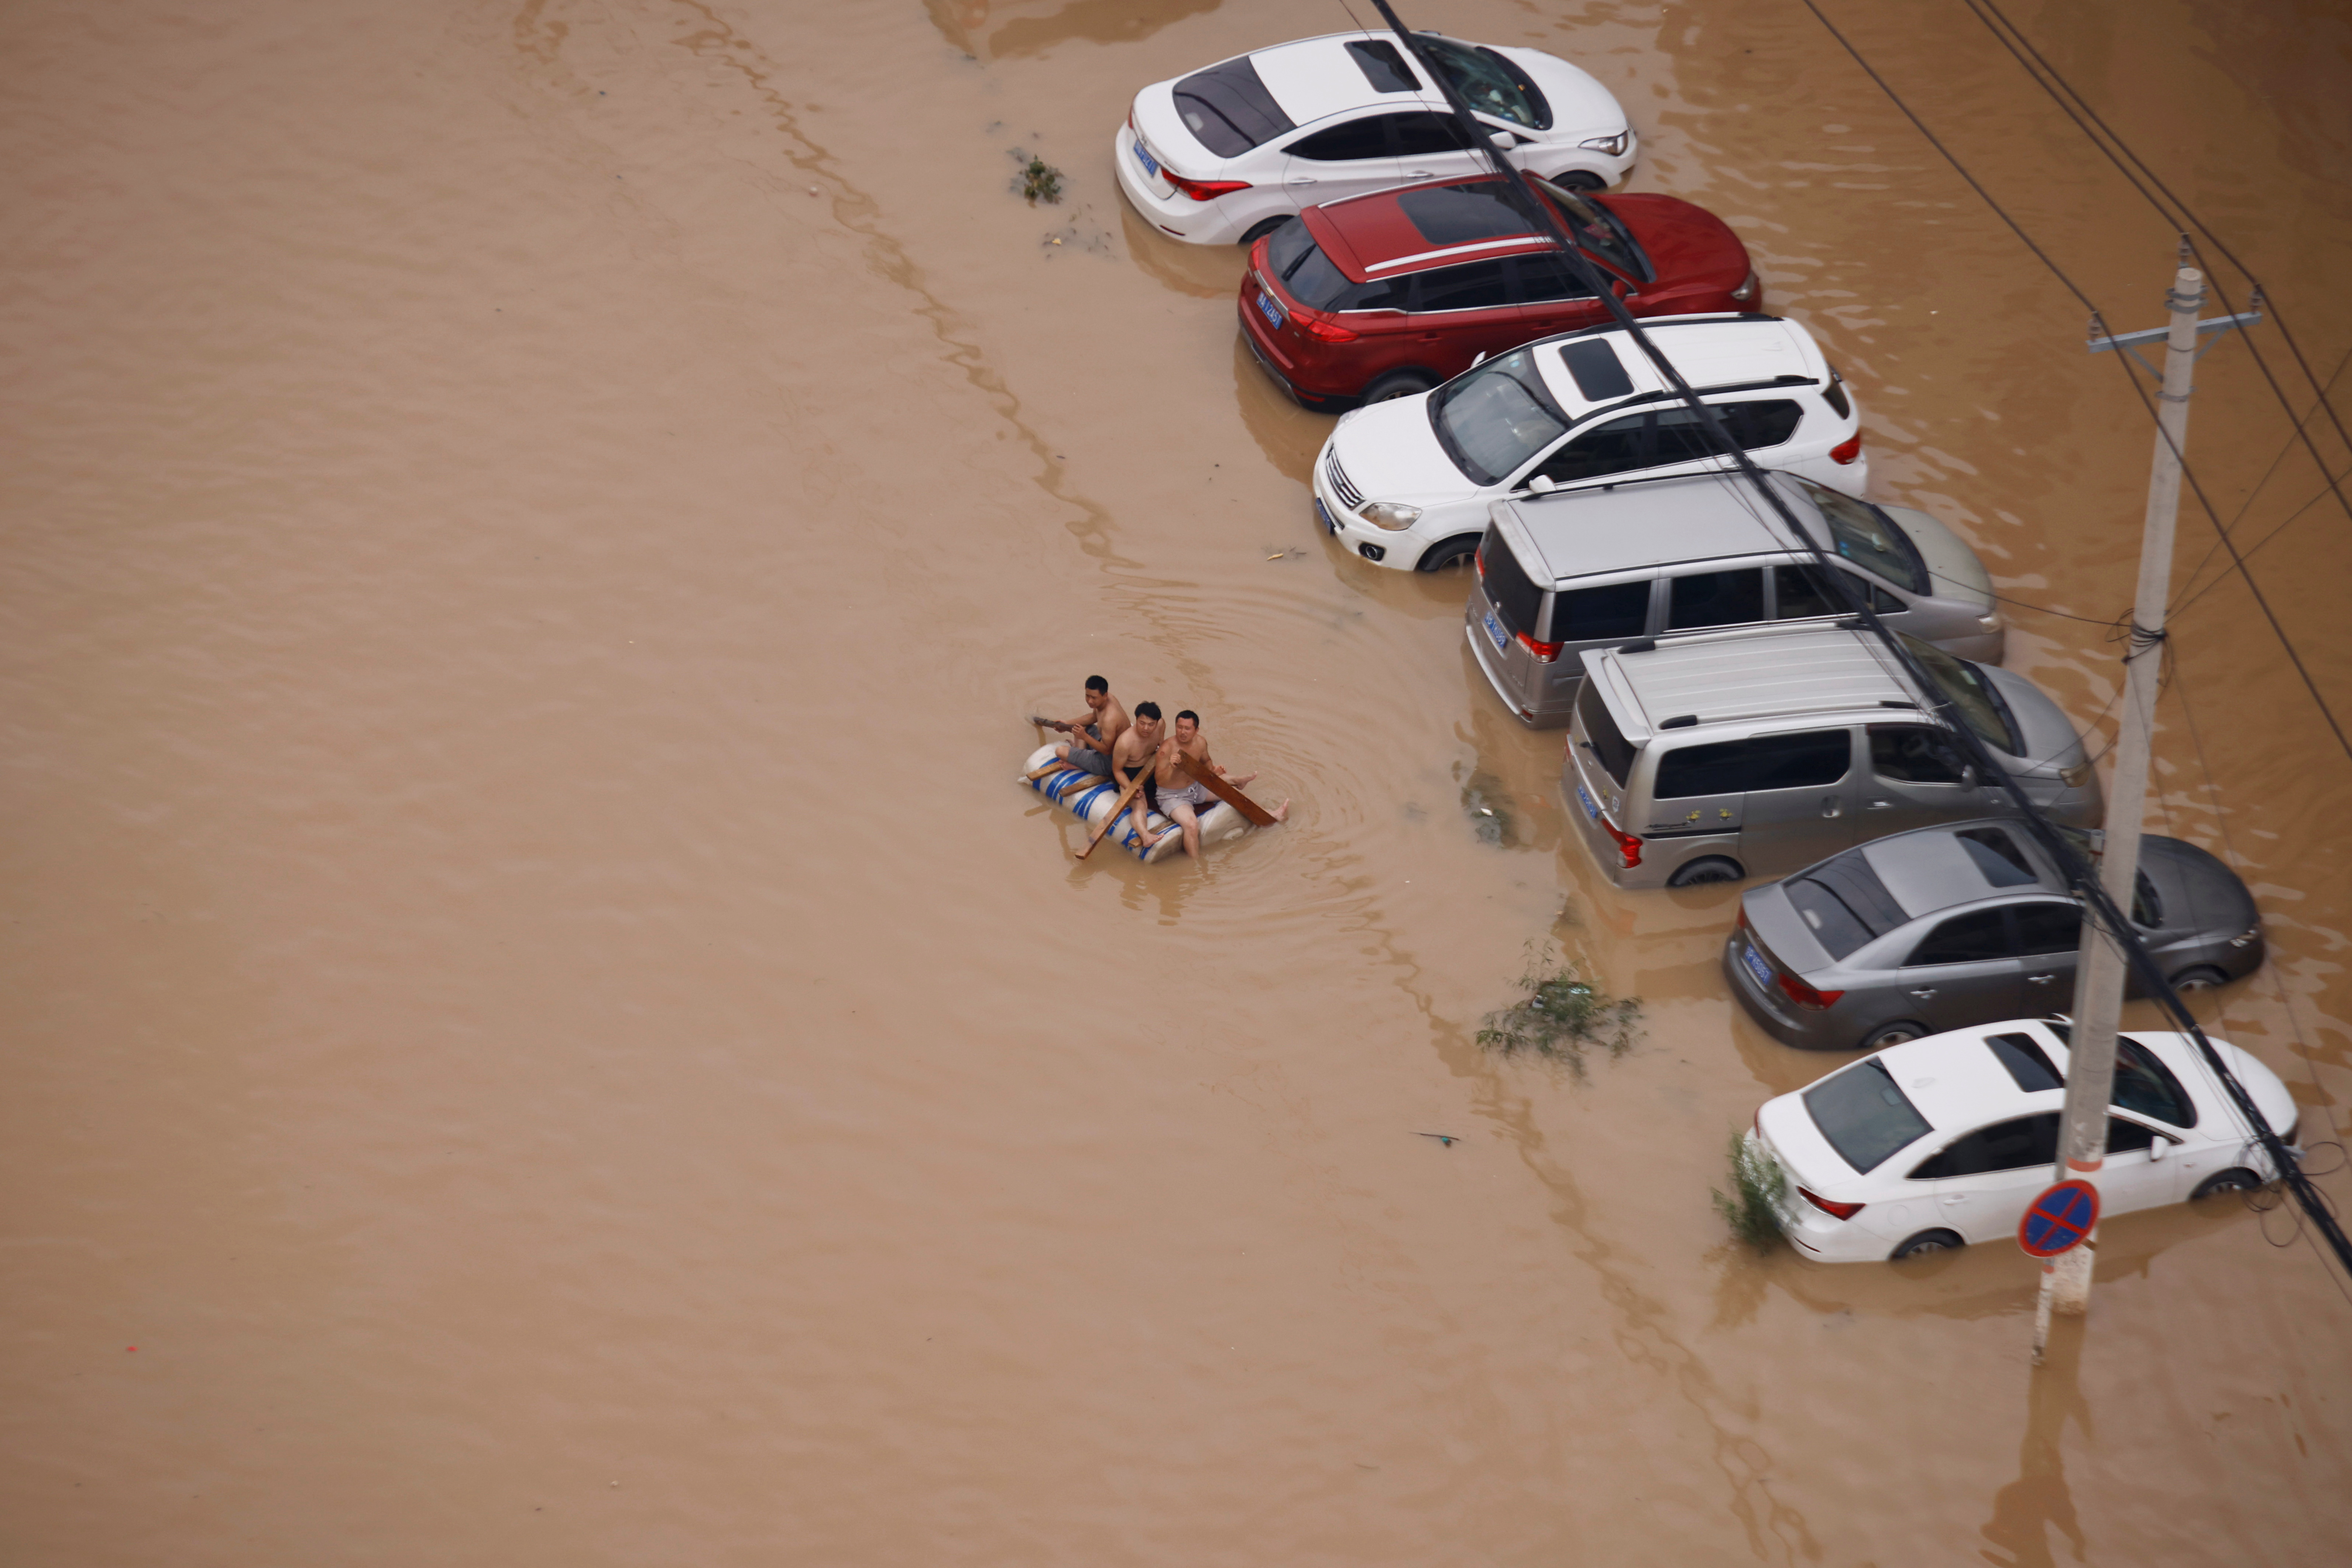 People on a makeshift raft make their way through a flooded road following heavy rainfall in Zhengzhou, Henan province, China July 22, 2021.  REUTERS/Aly Song